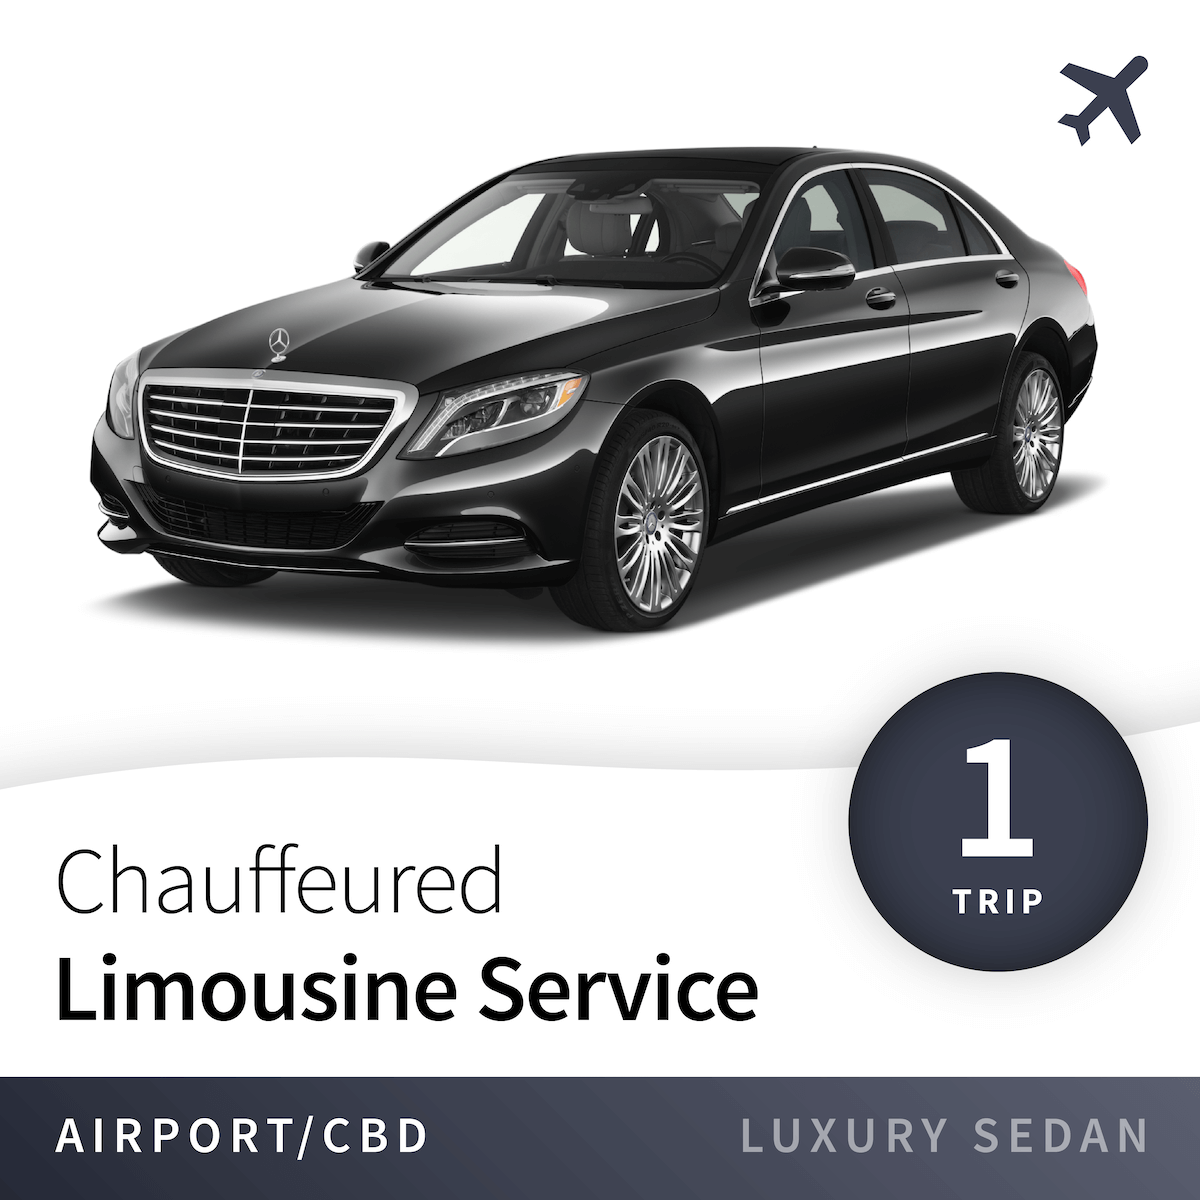 Chauffeured Limousine Service - Airport - Luxury Sedan (1 Trip) 19